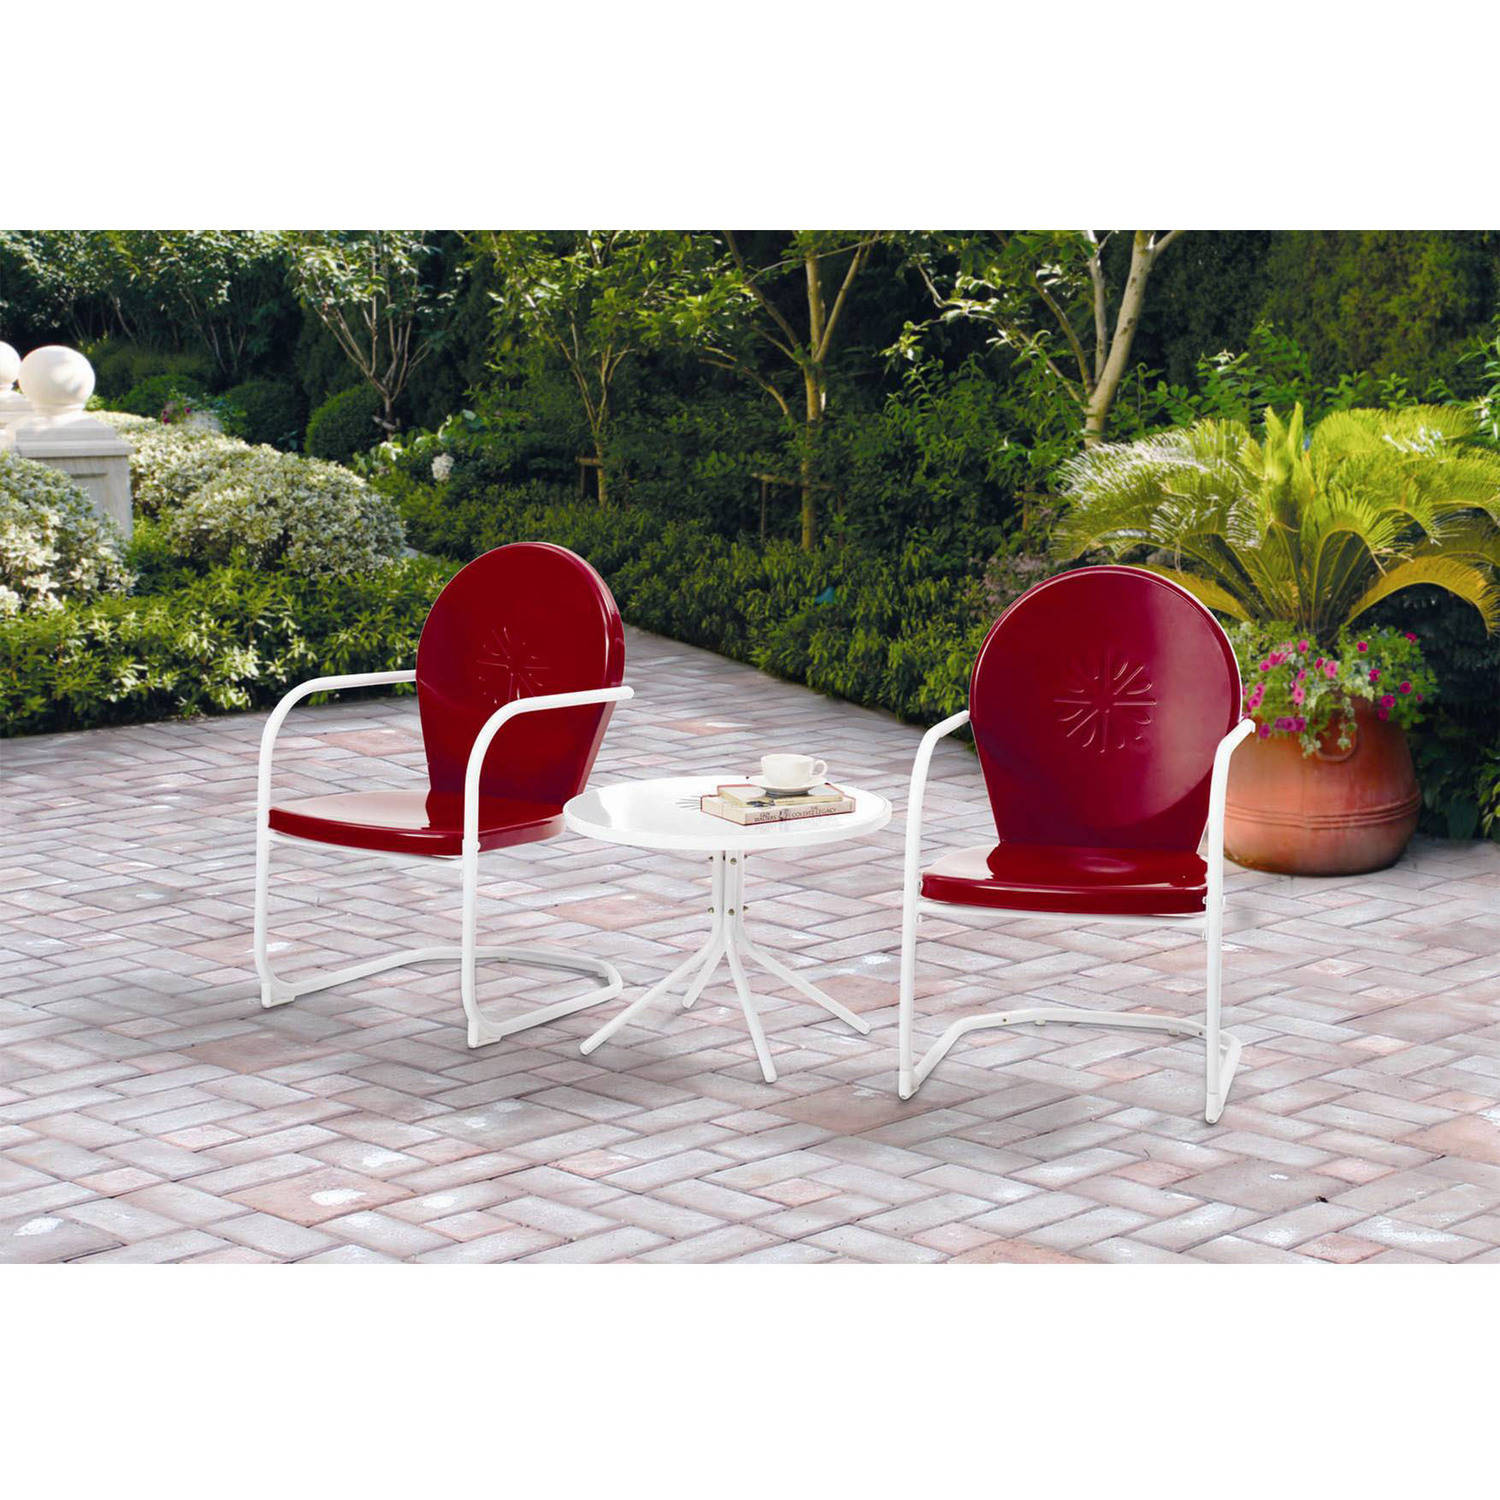 Red Patio Chairs Mainstays Retro C Spring 3 Piece Metal Outdoor Chat Set Red Seats 2 Walmart